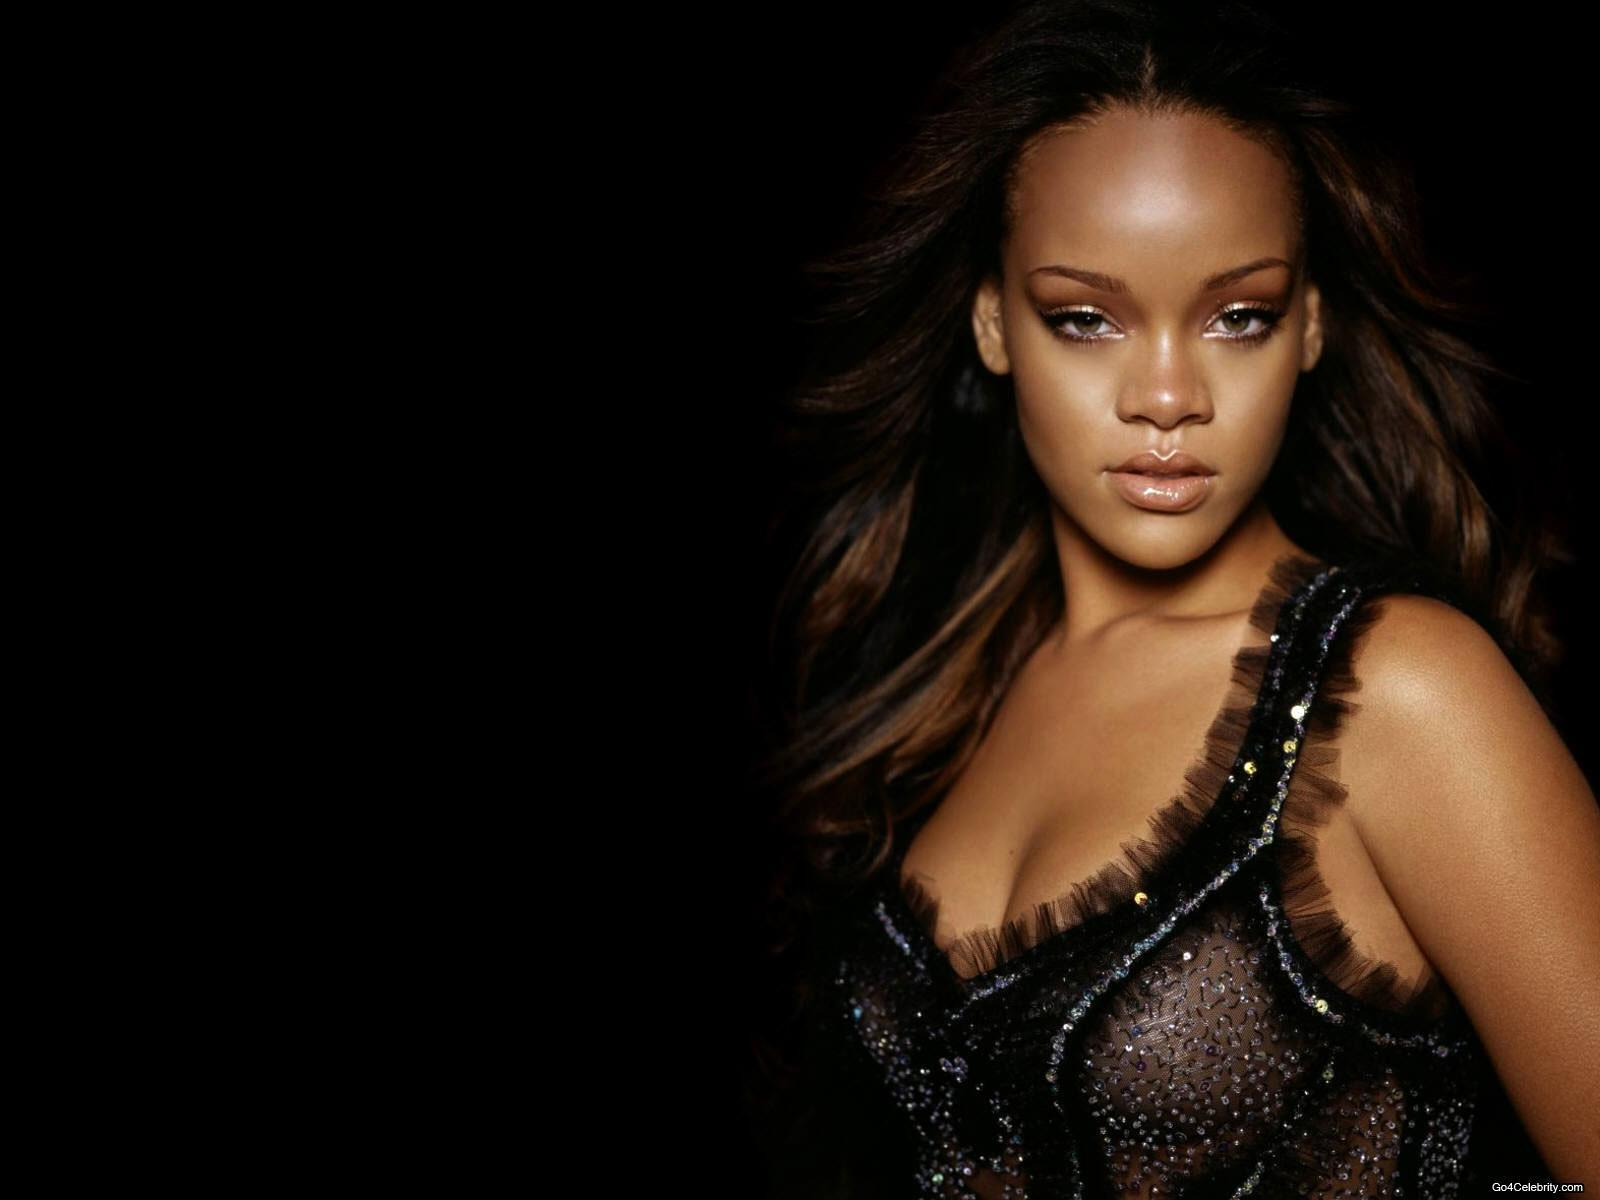 http://images2.fanpop.com/images/photos/6800000/Rihanna-rihanna-6848141-1600-1200.jpg